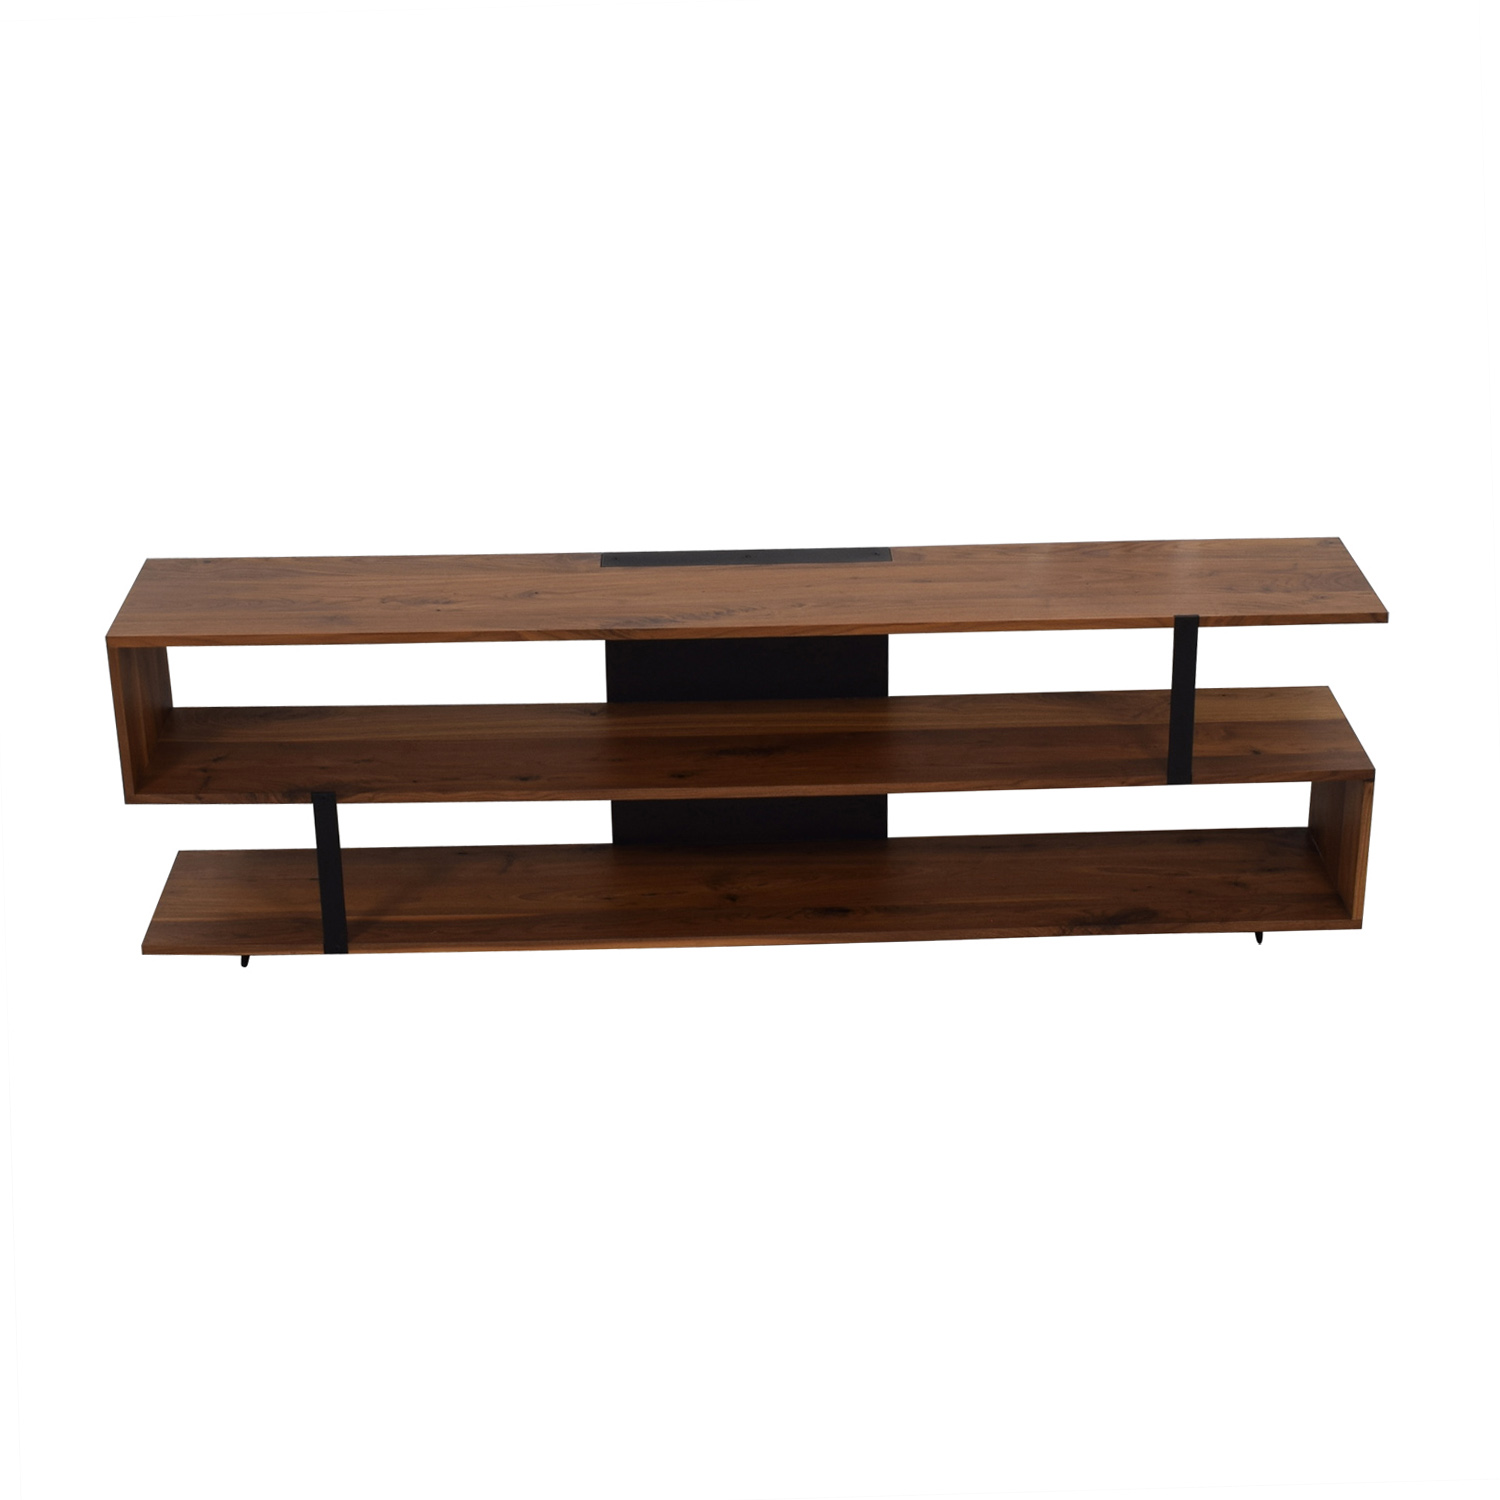 shop Crate & Barrel Crate & Barrel Wood Media Stand online